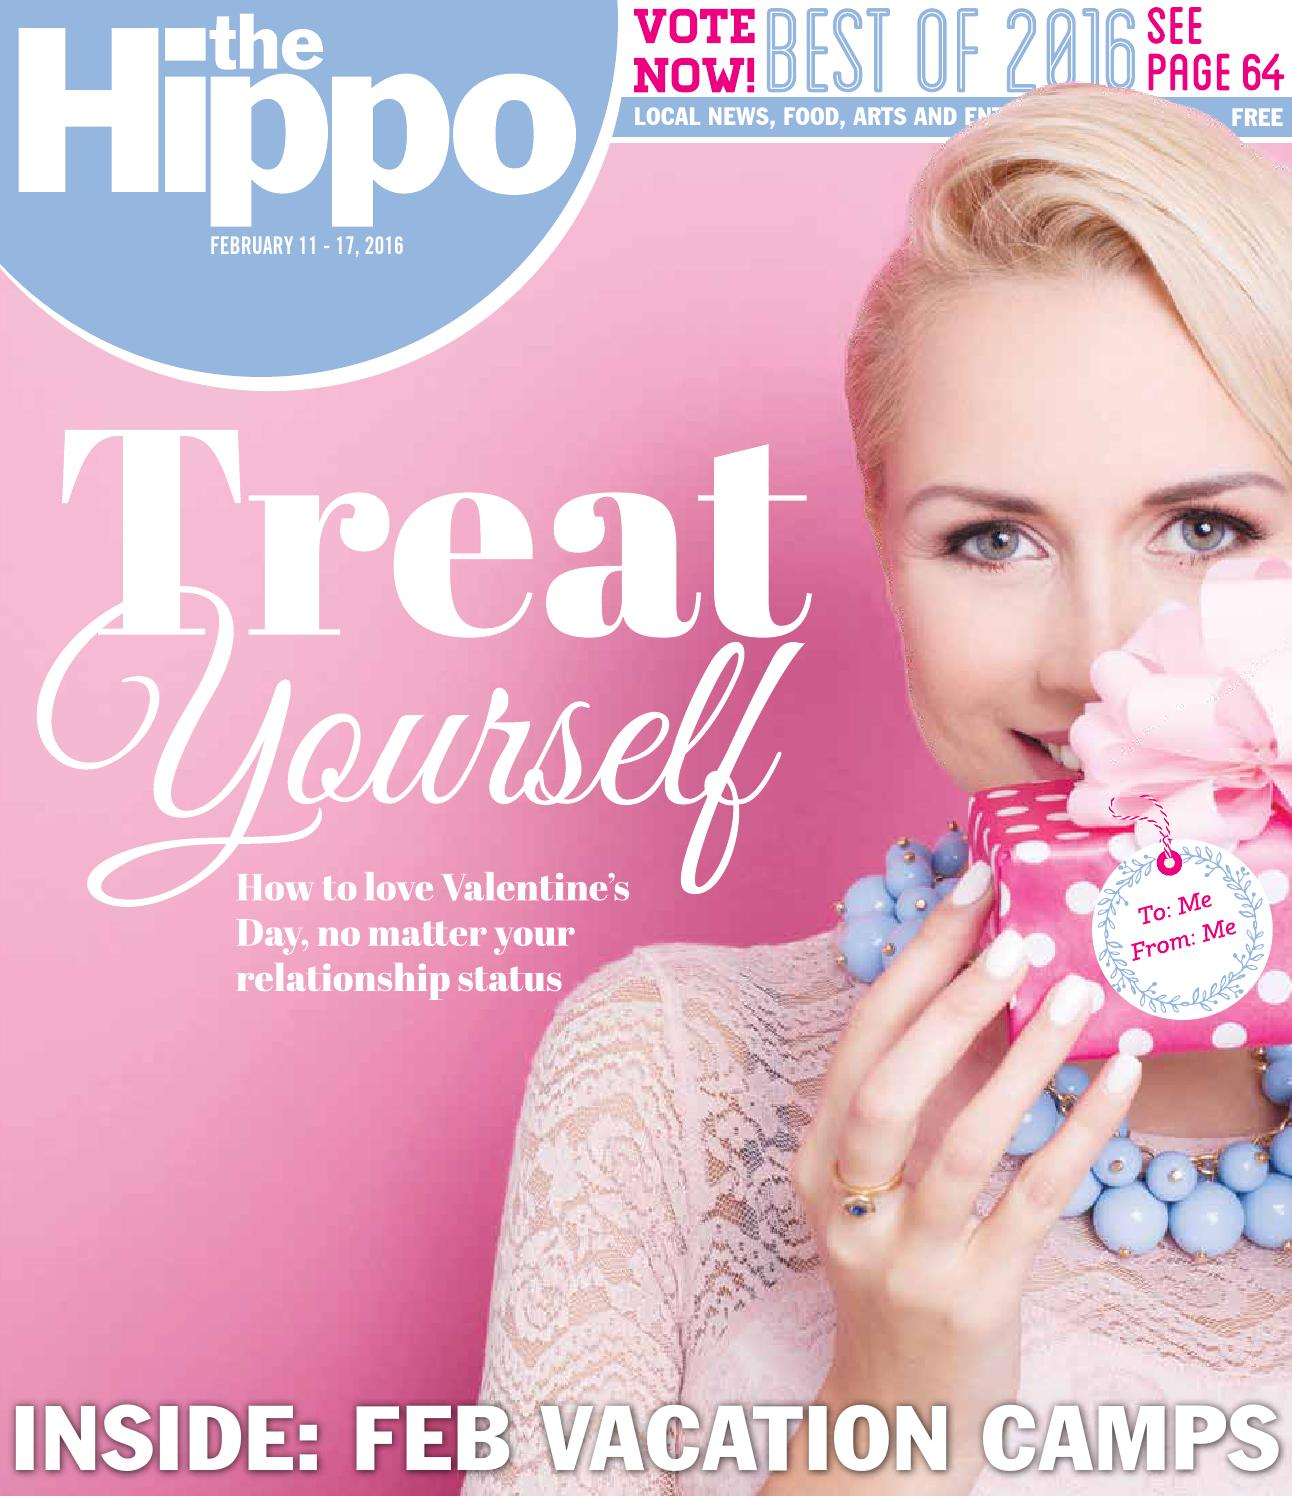 017bcf218be Hippo 2 11 16 by The Hippo - issuu